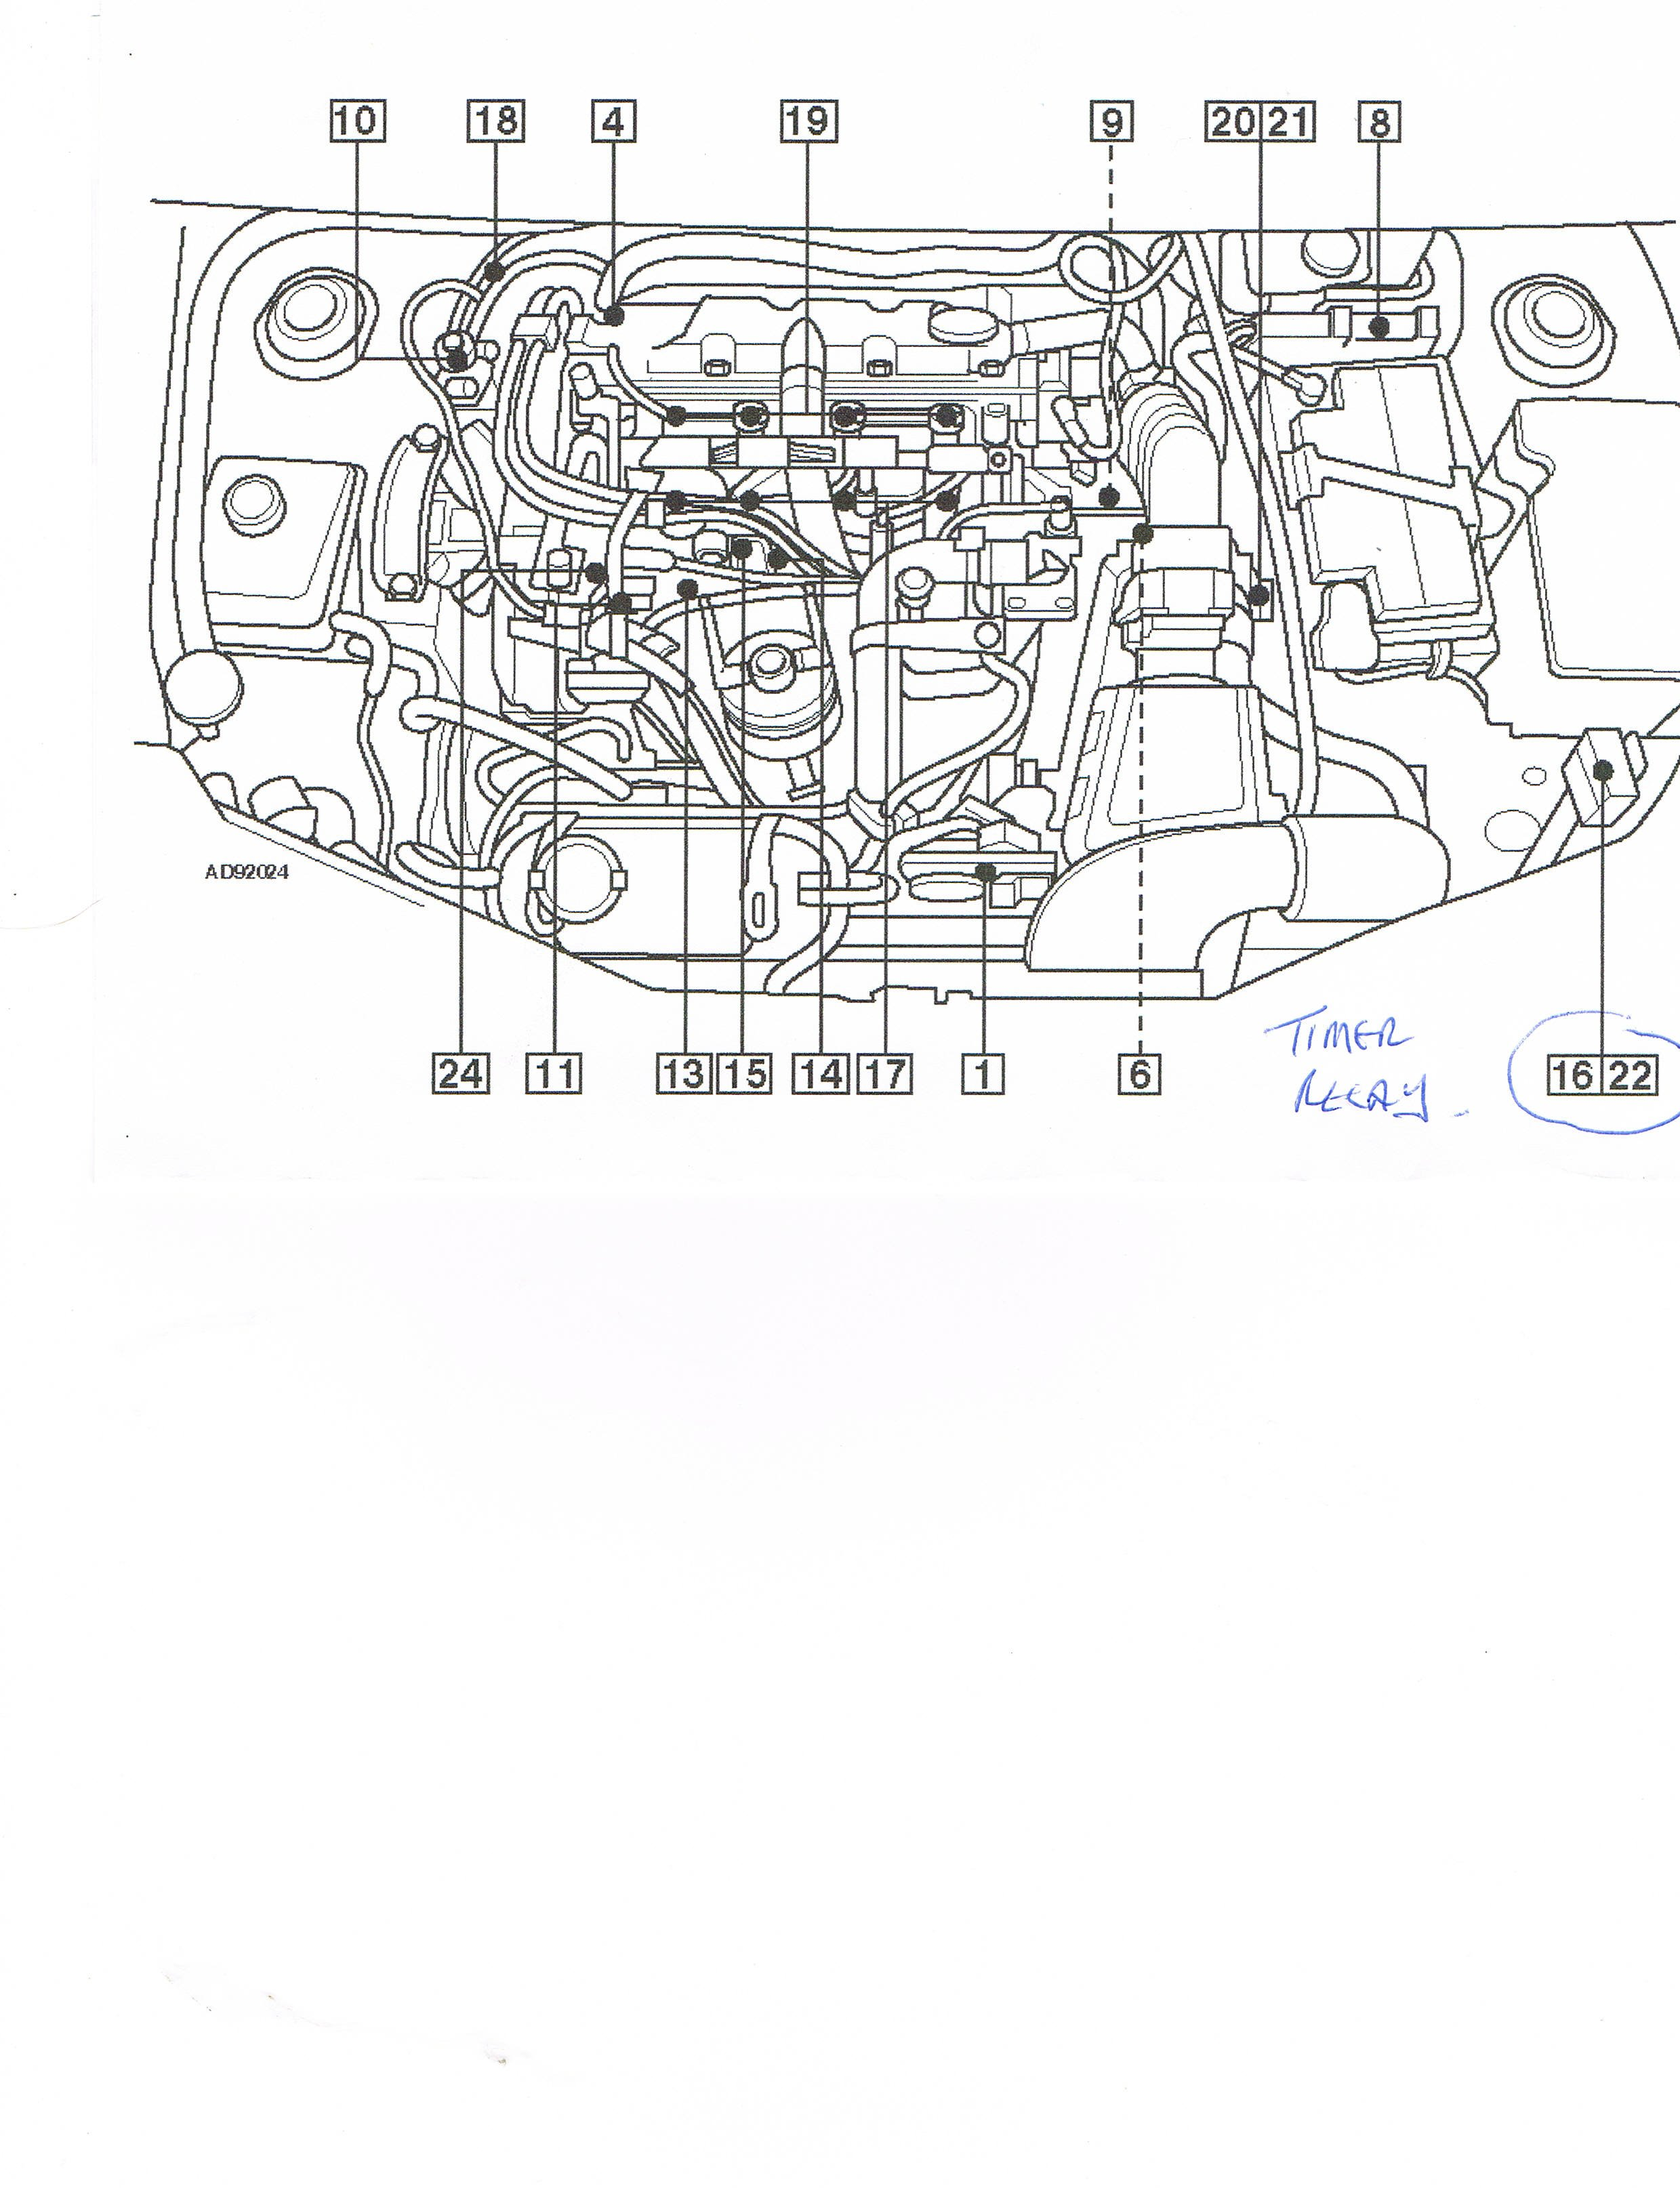 Diagram Citroen Berlingo 2010 Wiring Diagram Full Version Hd Quality Wiring Diagram Diagramslanz Leleganzadeifiori It